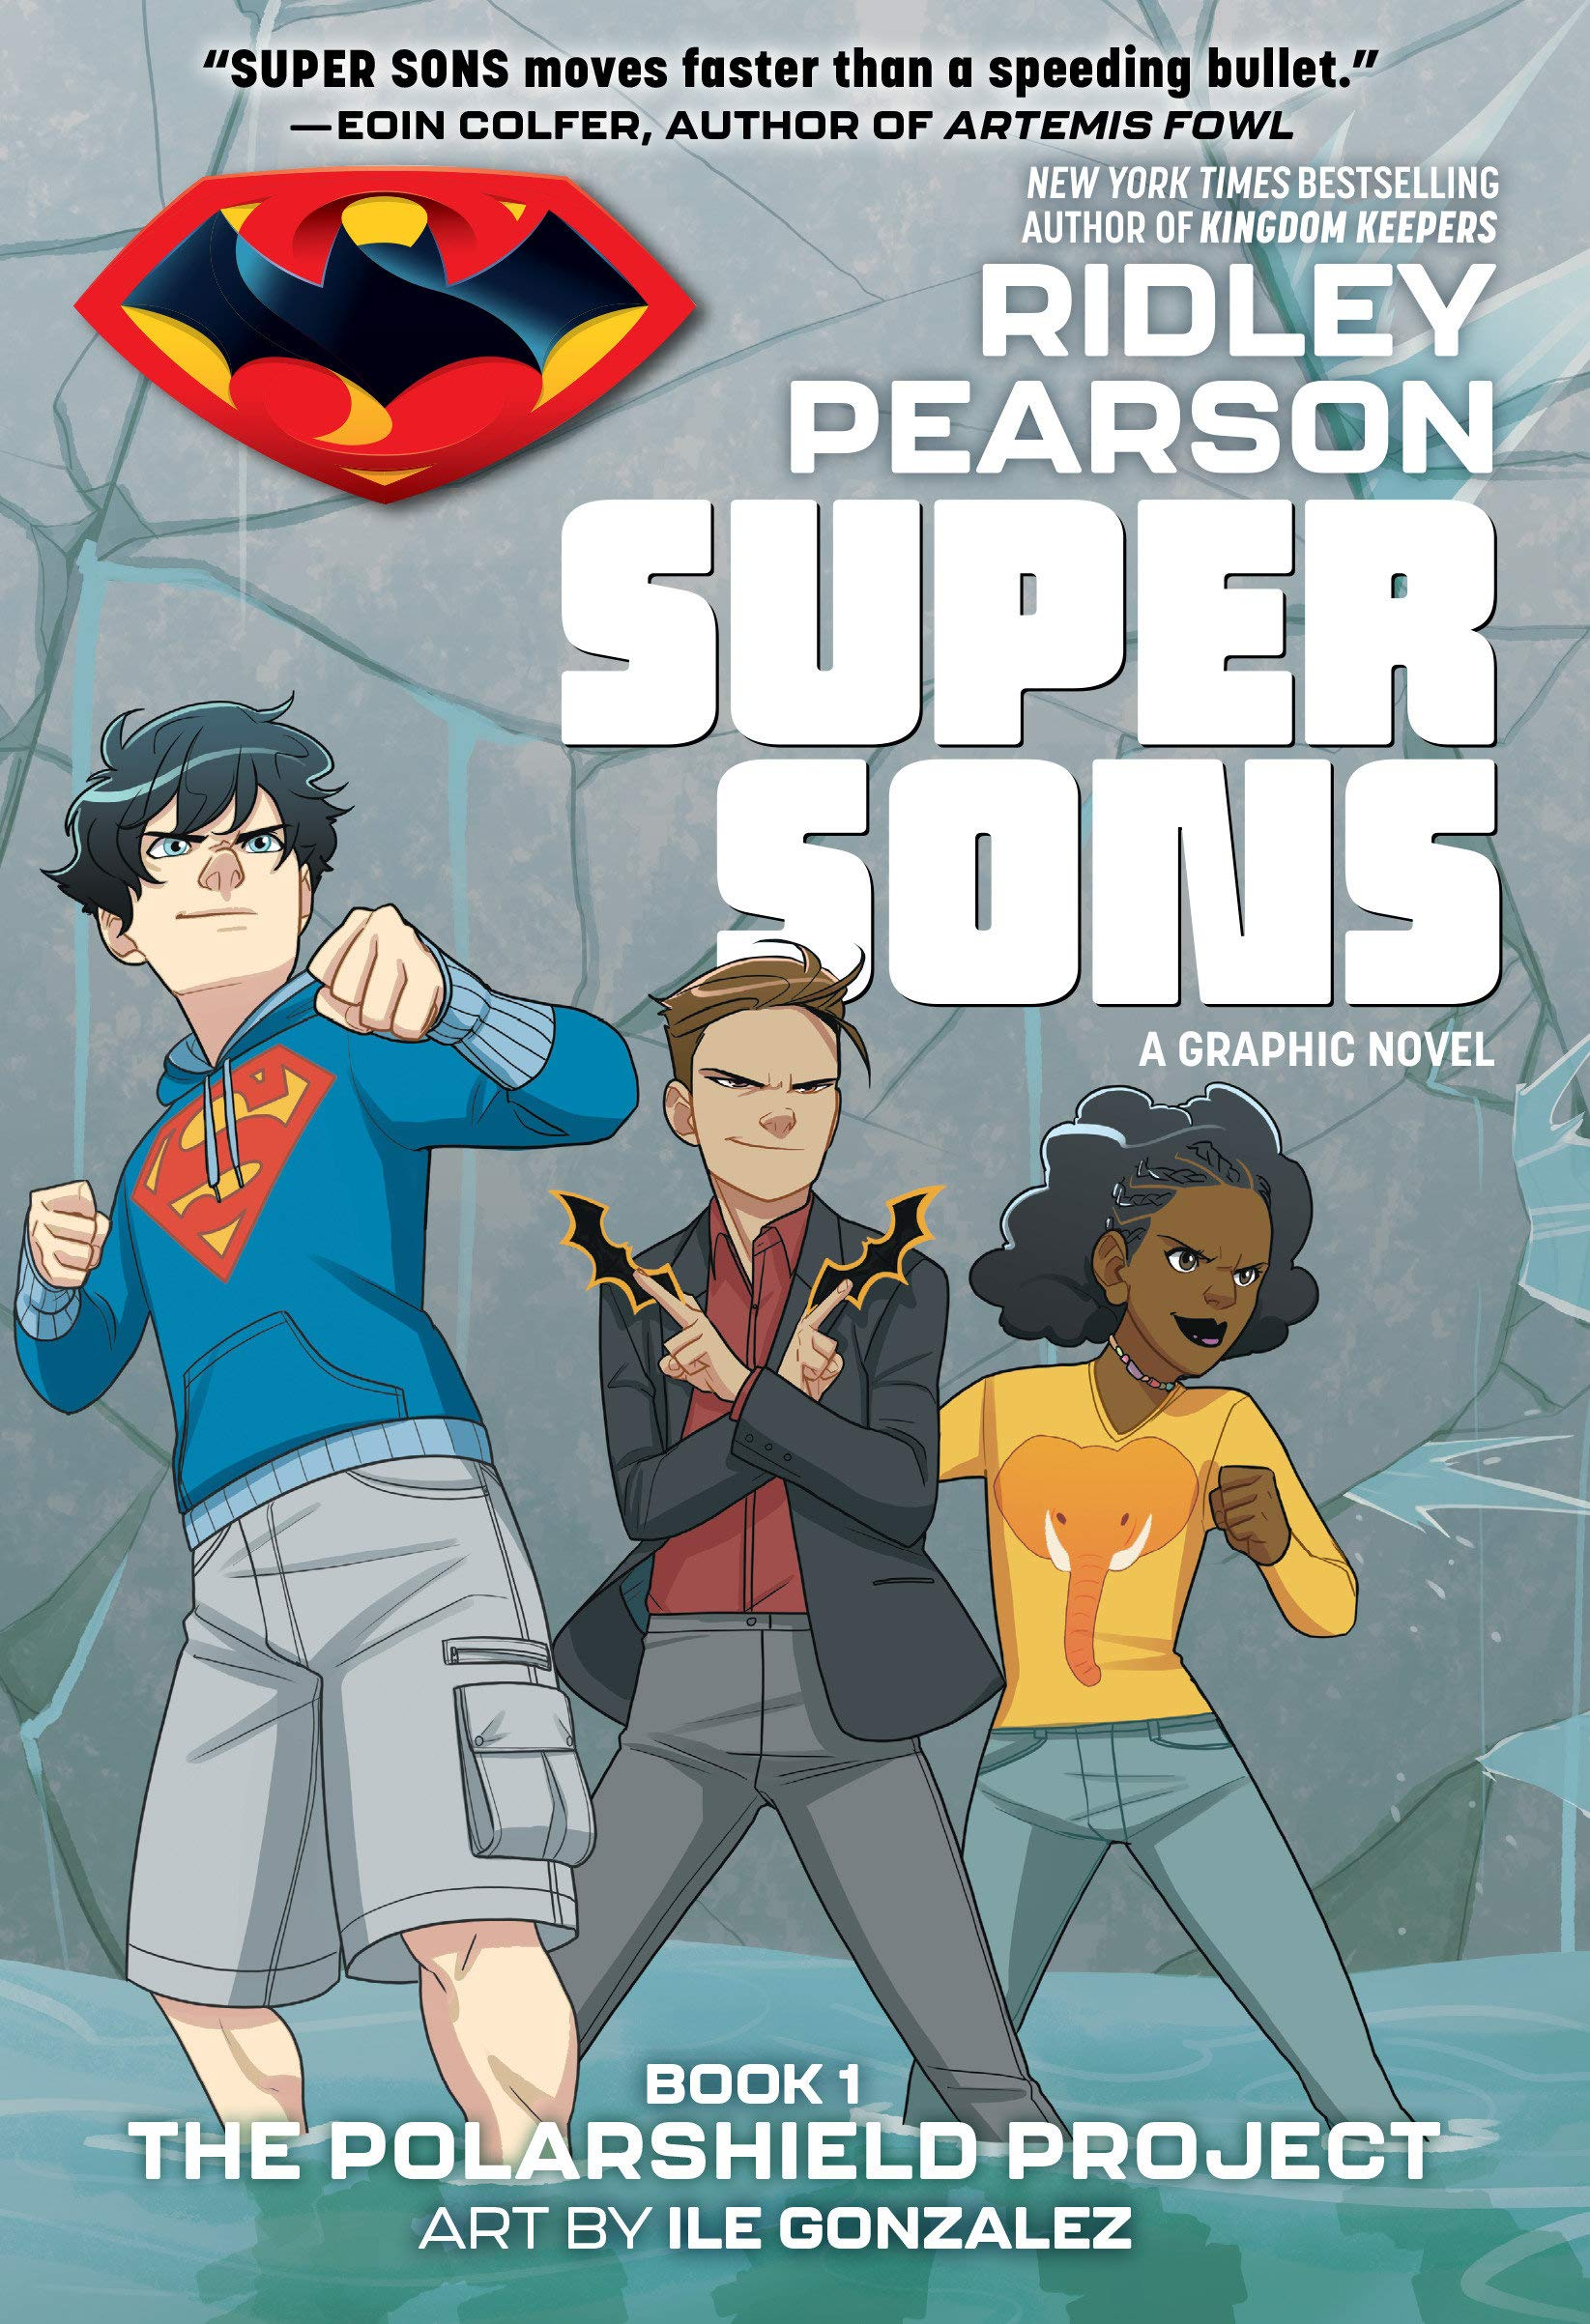 Image result for super sons ridley pearson